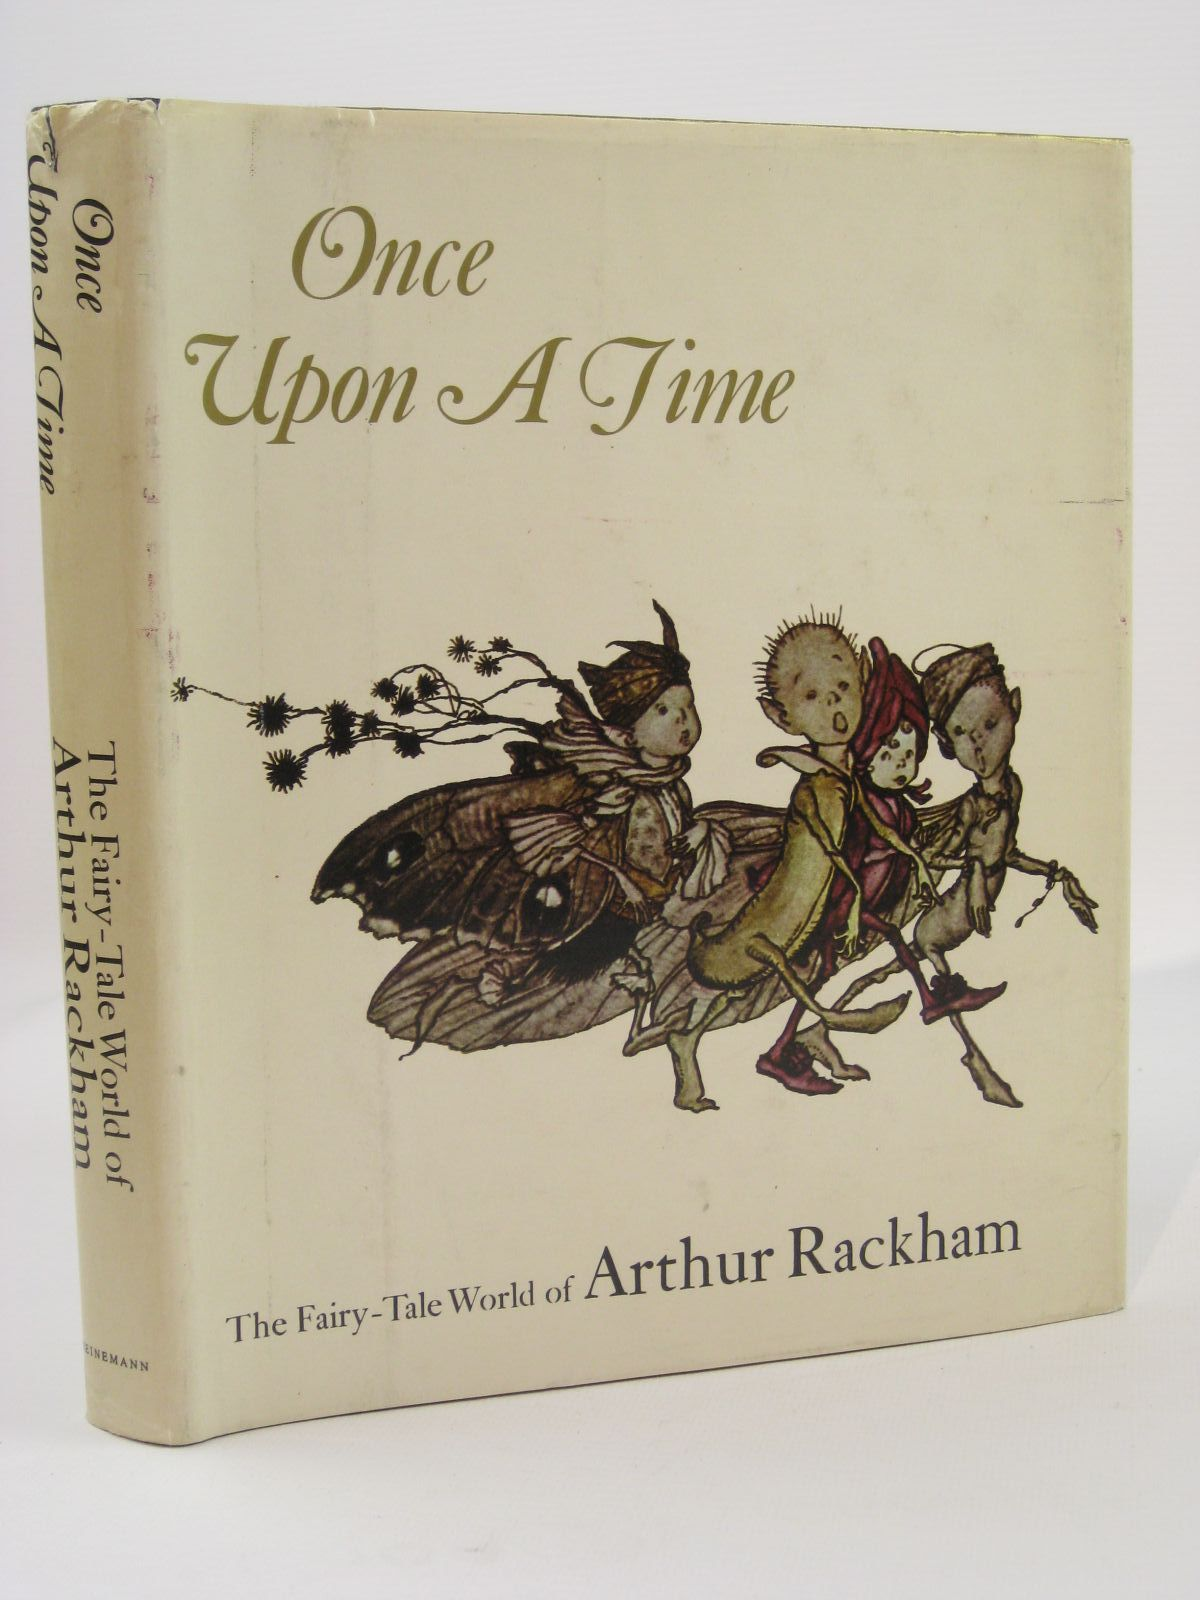 Cover of ONCE UPON A TIME THE FAIRY-TALE WORLD OF ARTHUR RACKHAM by Margery Darrell